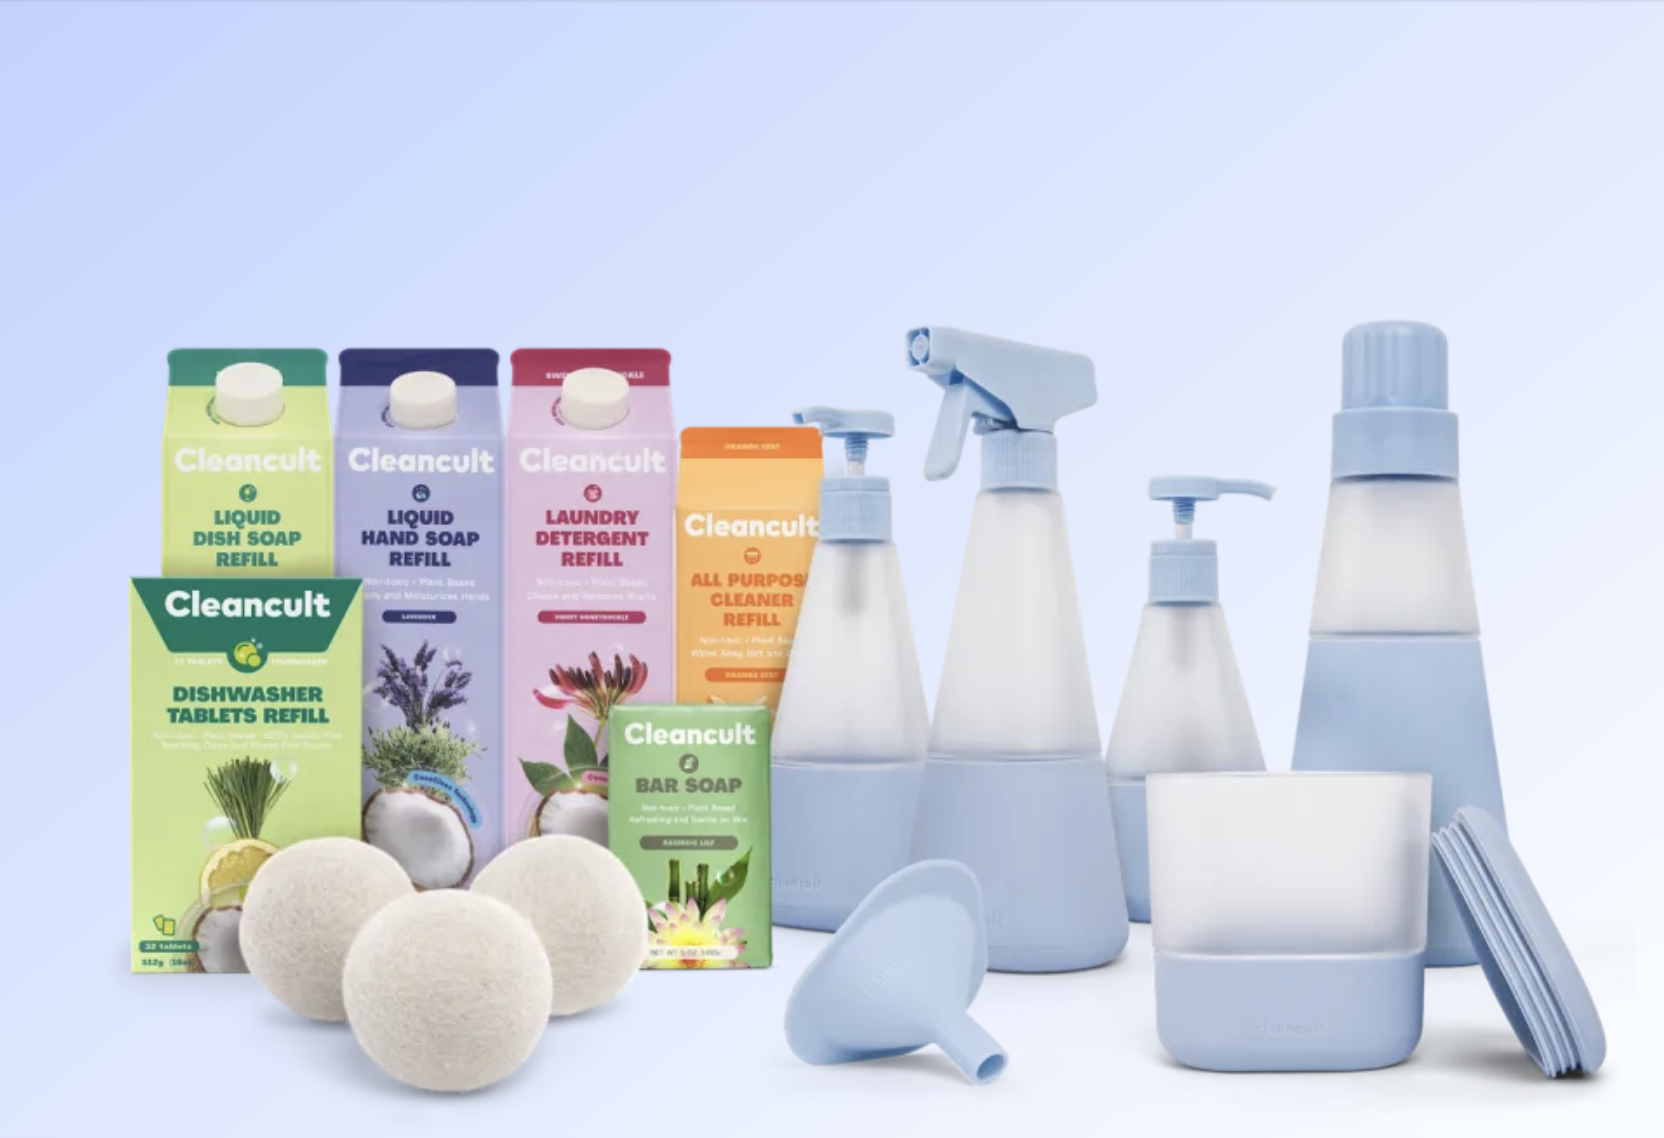 The complete home cleaning bundle in periwinkle